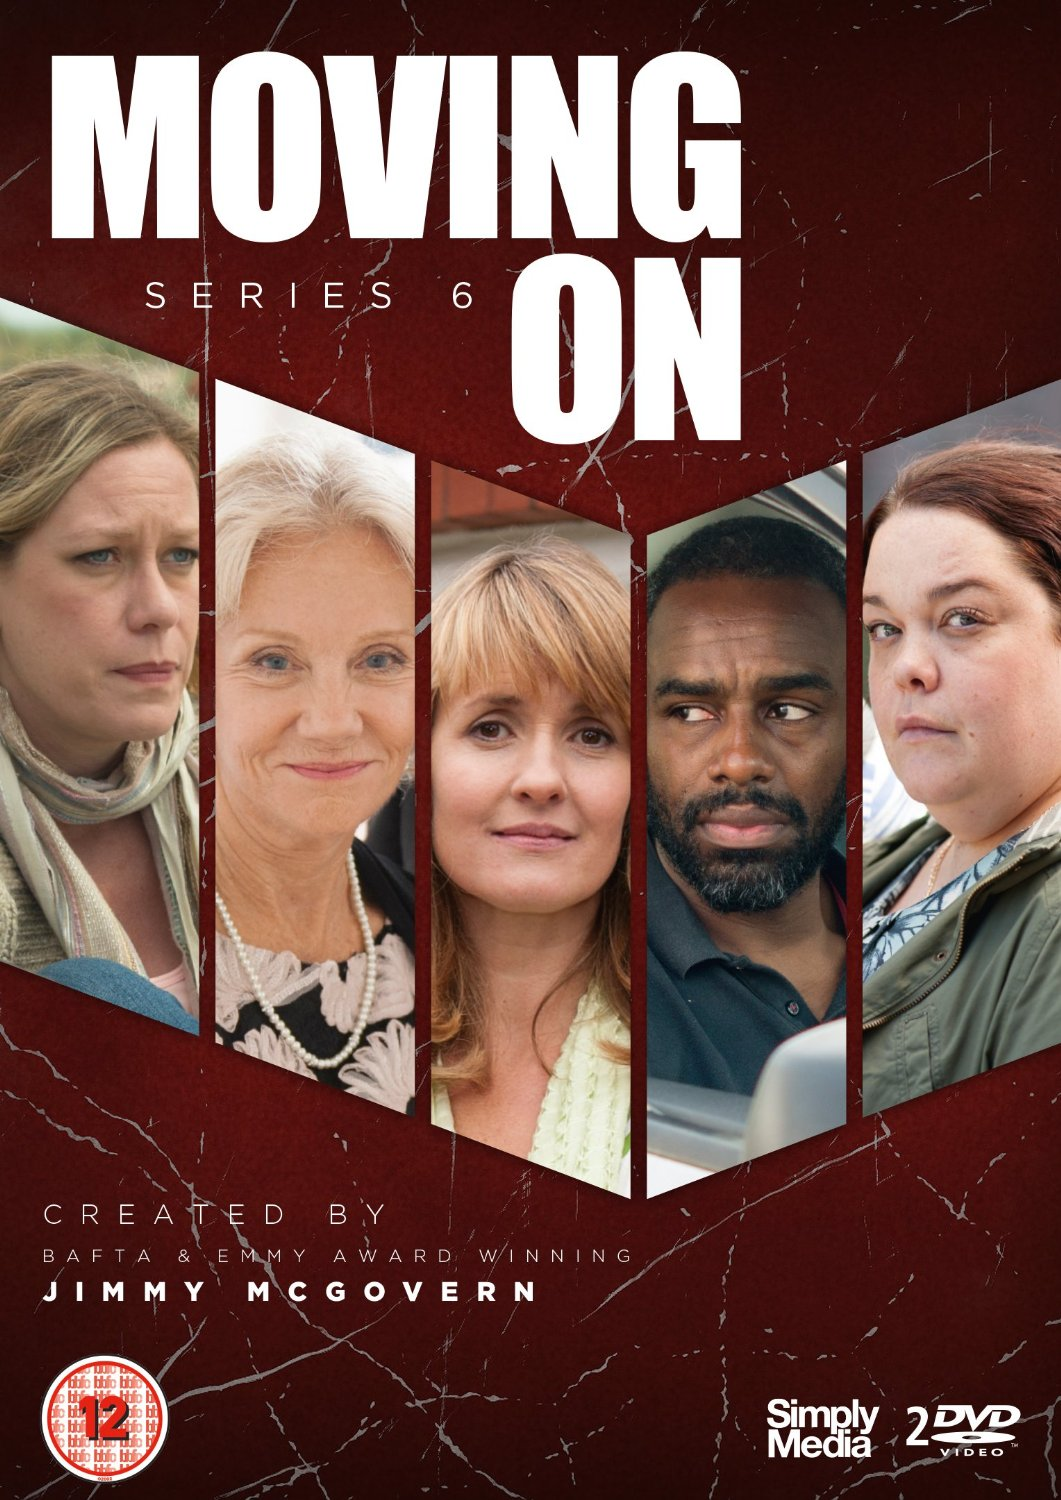 Moving On - Series 6 DVD.jpg